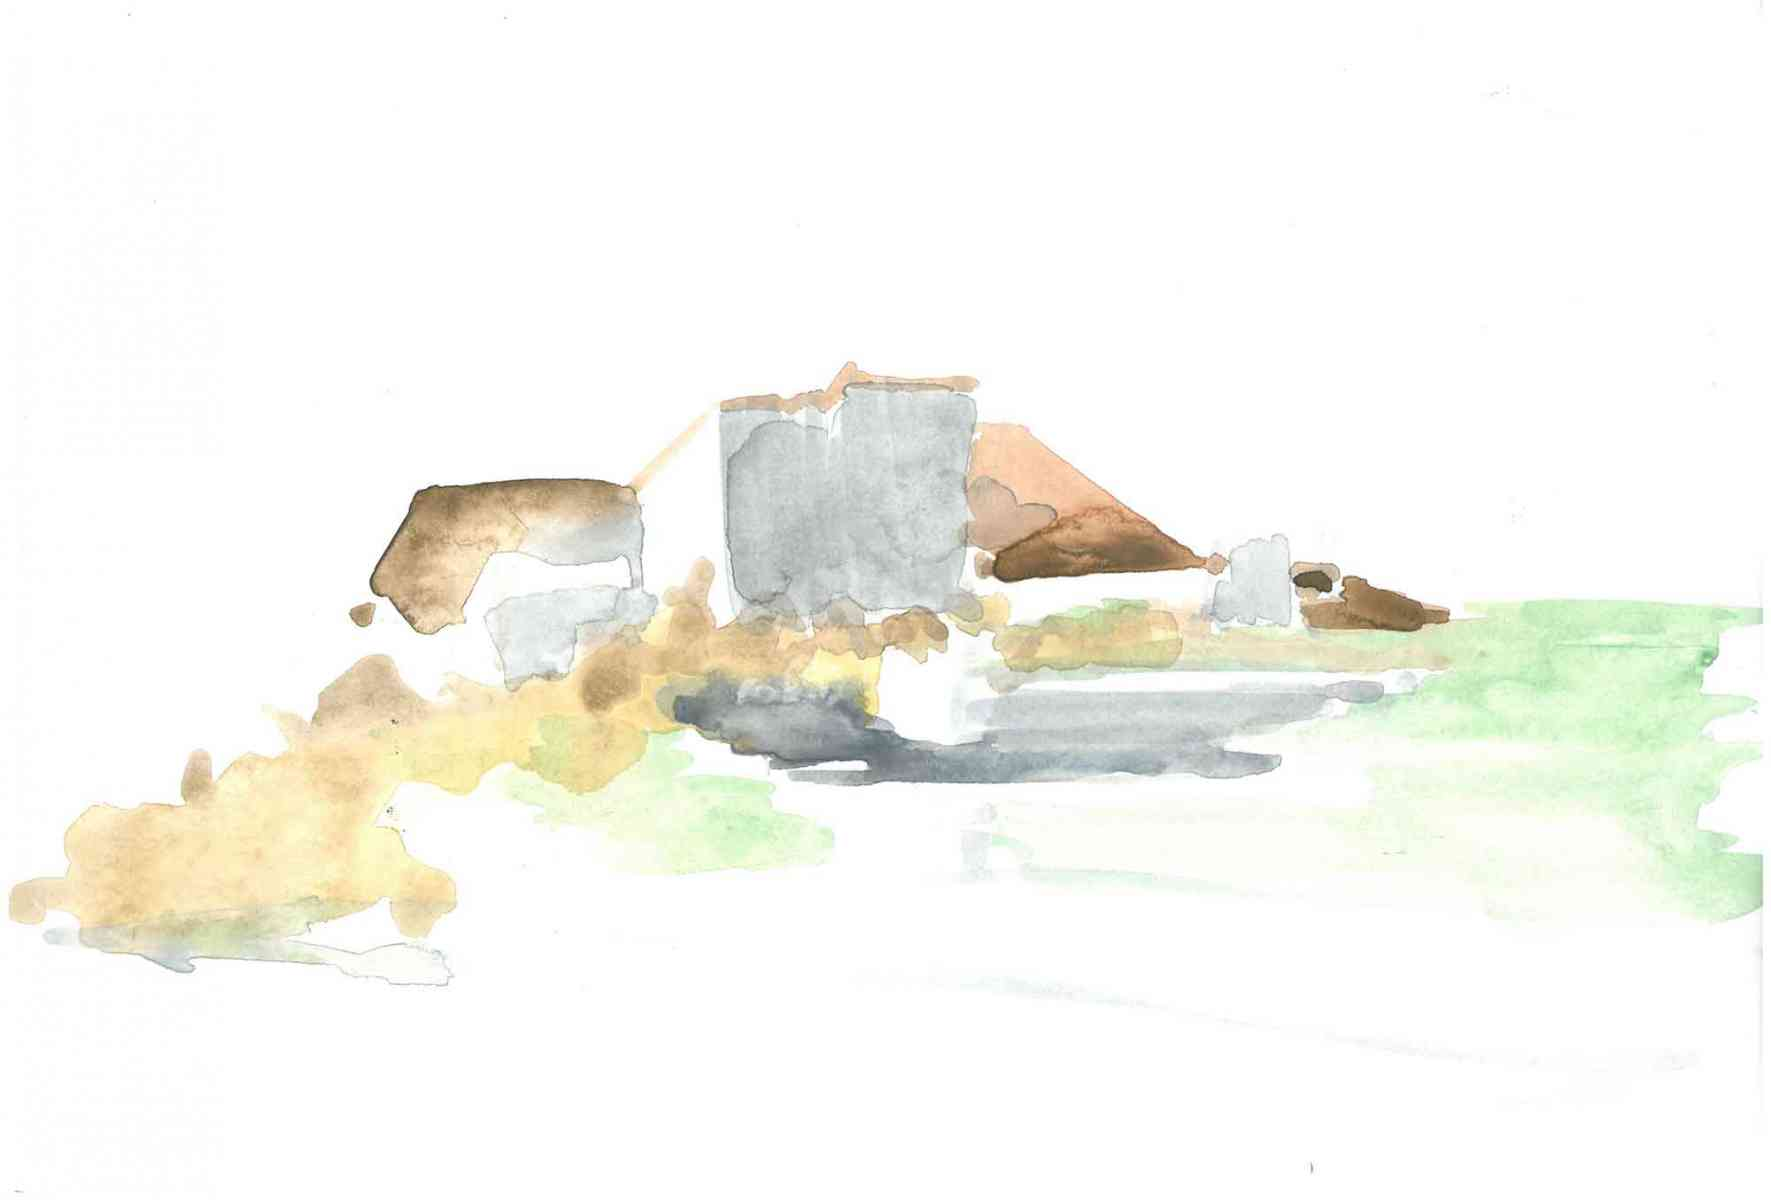 Alice Richardson - Teahouse. Alvaro Siza. Watercolour